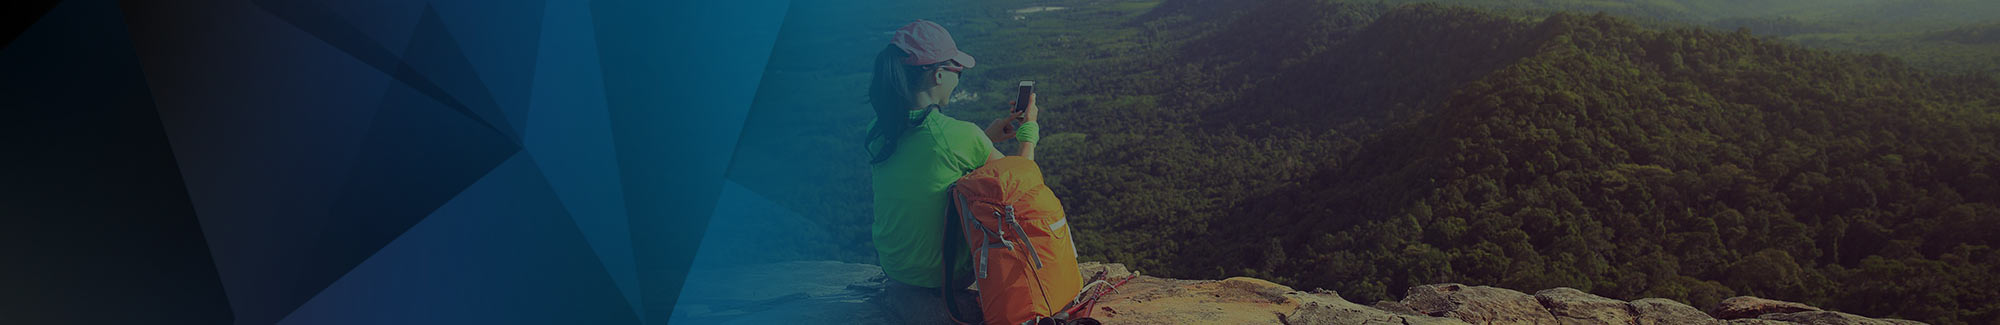 Hiker on a mountain using her smartphone